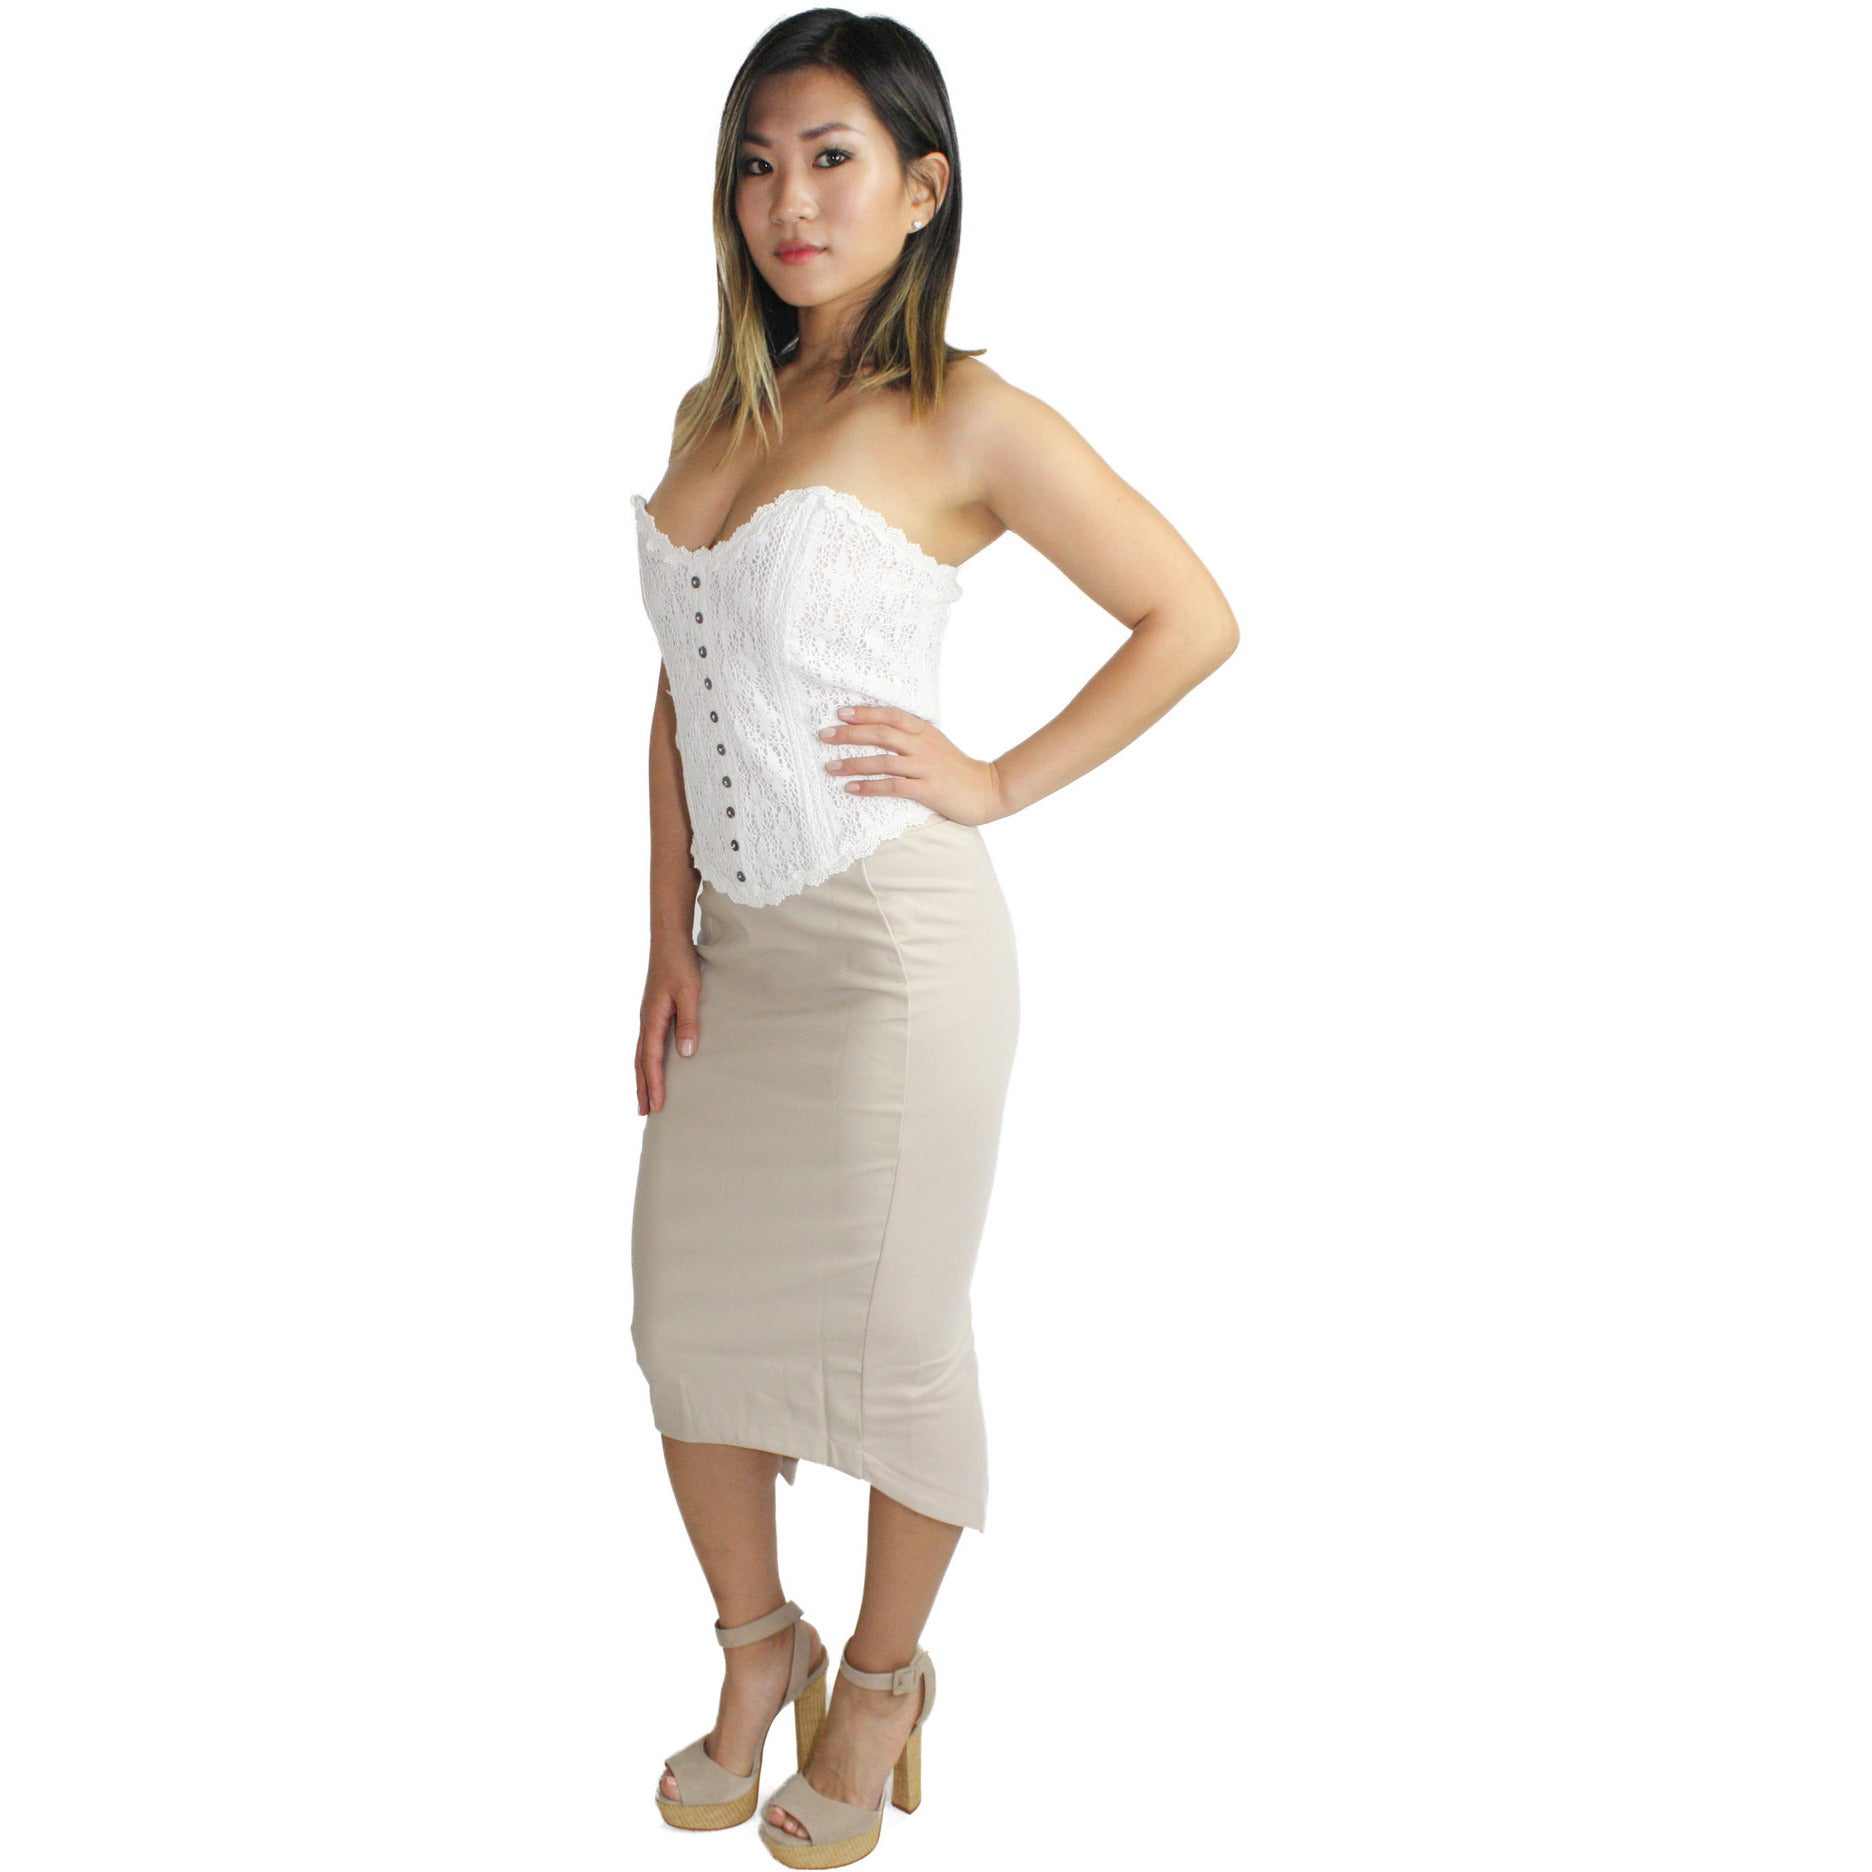 Mother of Pearl Bustier in Off White Lace